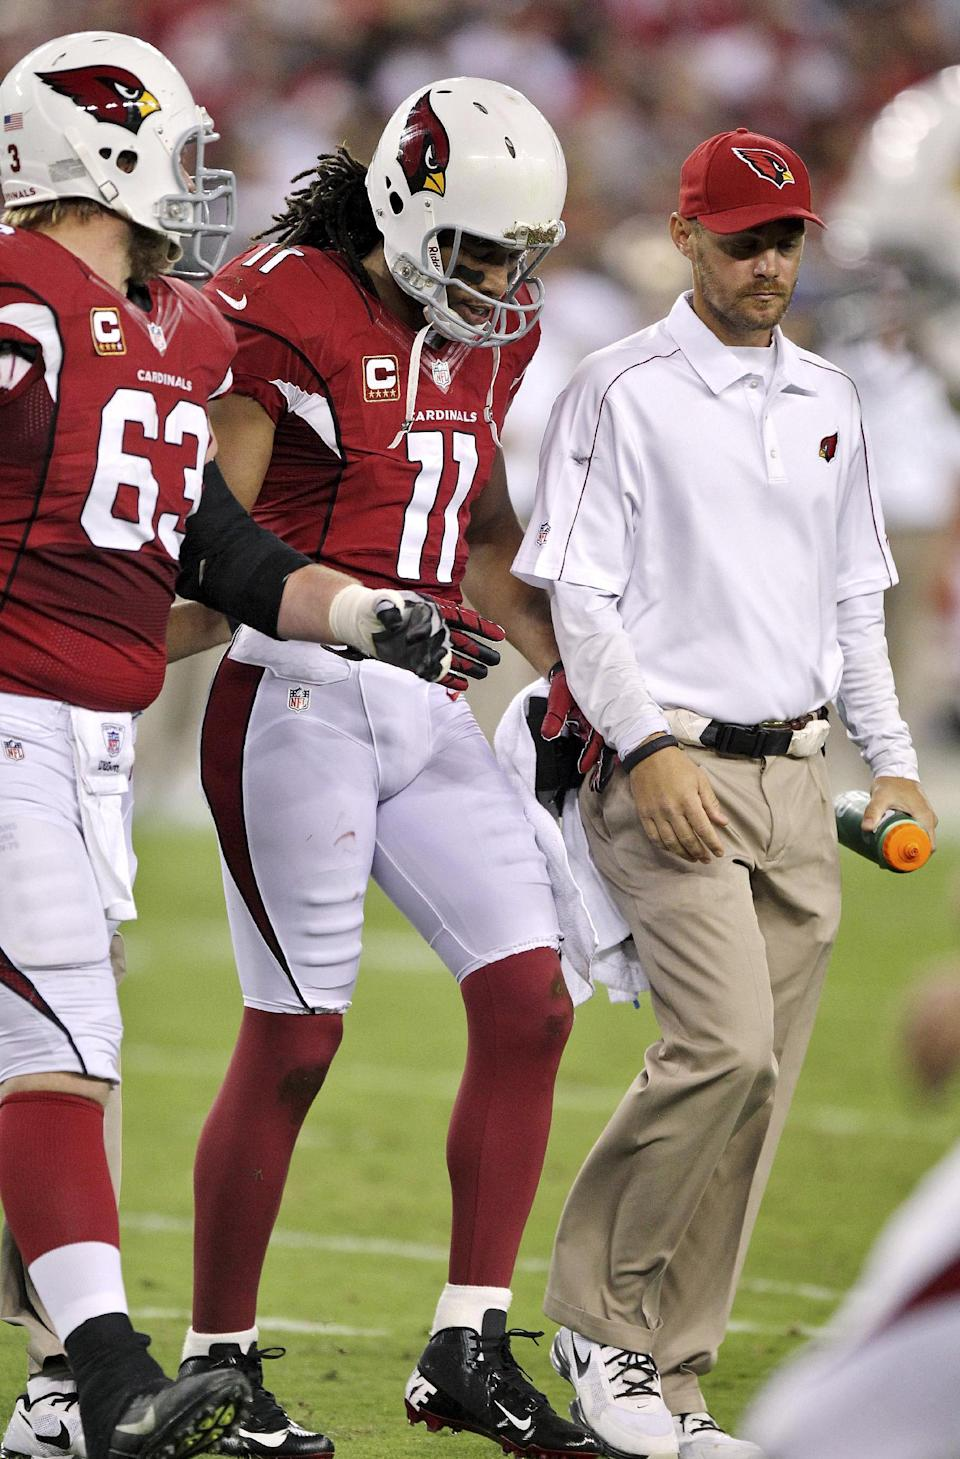 Arizona Cardinals wide receiver Larry Fitzgerald (11) leaves the field after being hurt during the first half of an NFL football game against the San Francisco 49ers, Monday, Oct. 29, 2012, in Glendale, Ariz. At left is Lyle Sendlein (63). (AP Photo/Paul Connors)